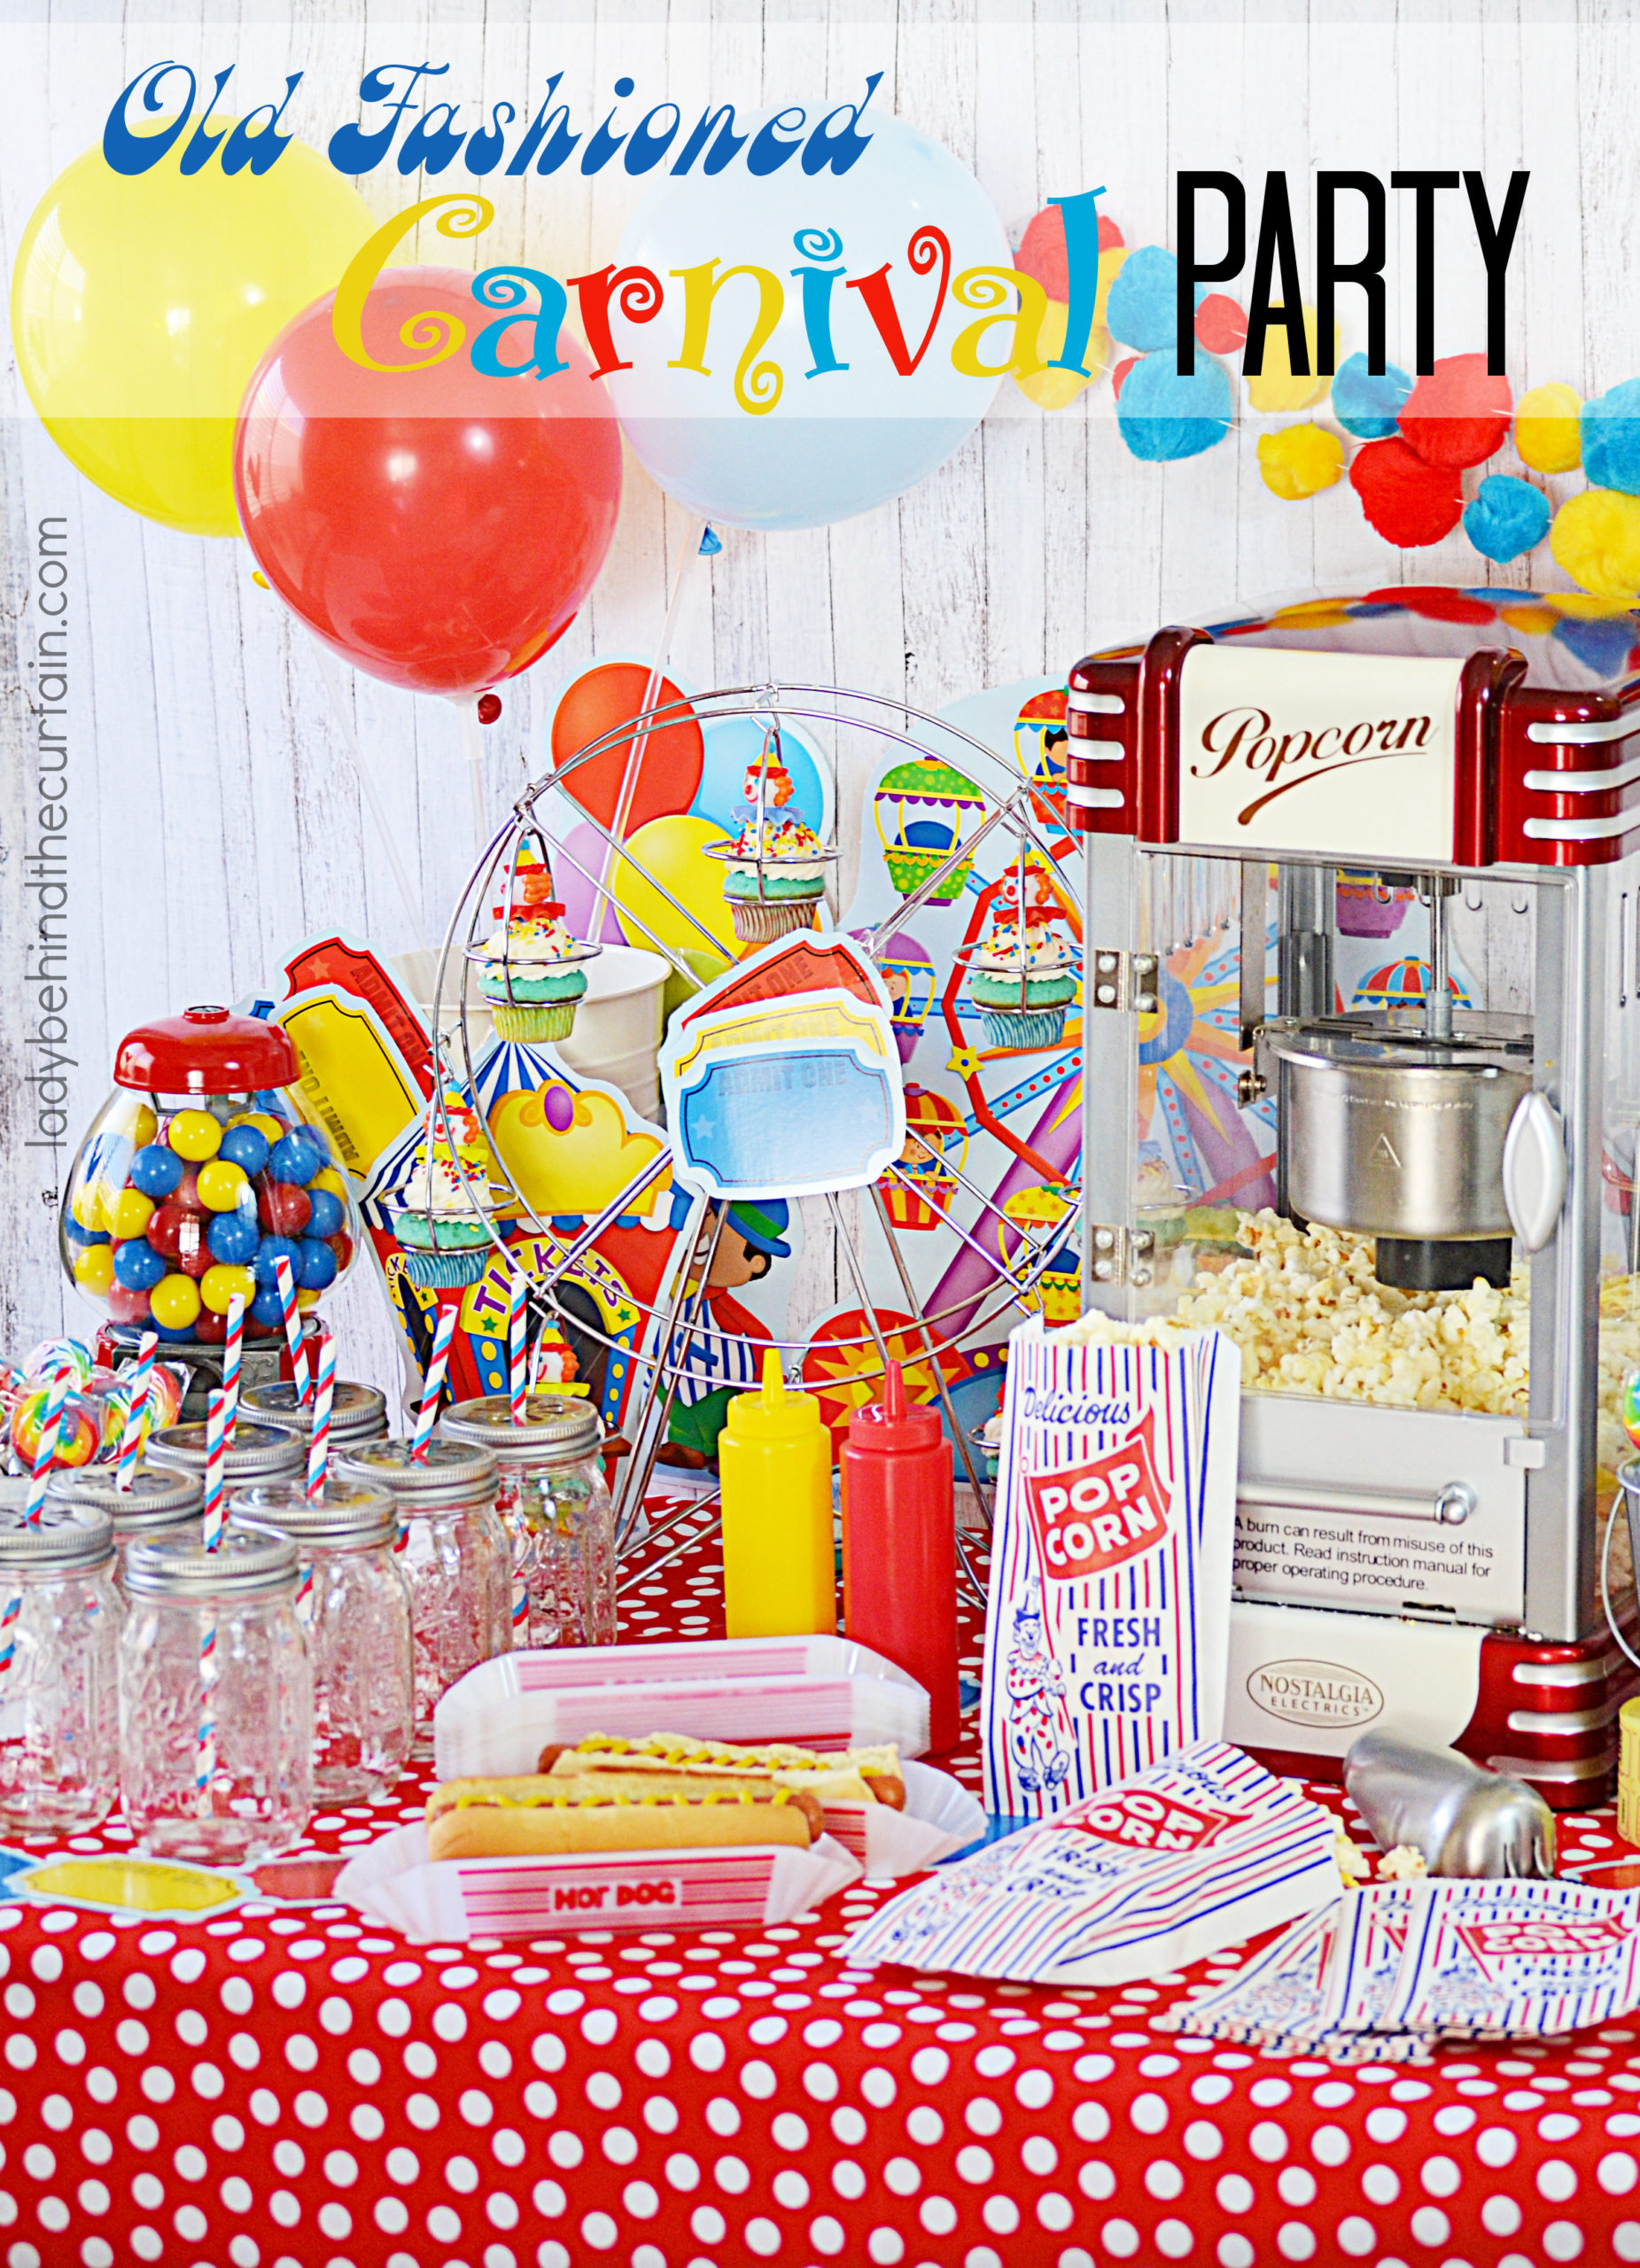 Old Fashioned Carnival Party